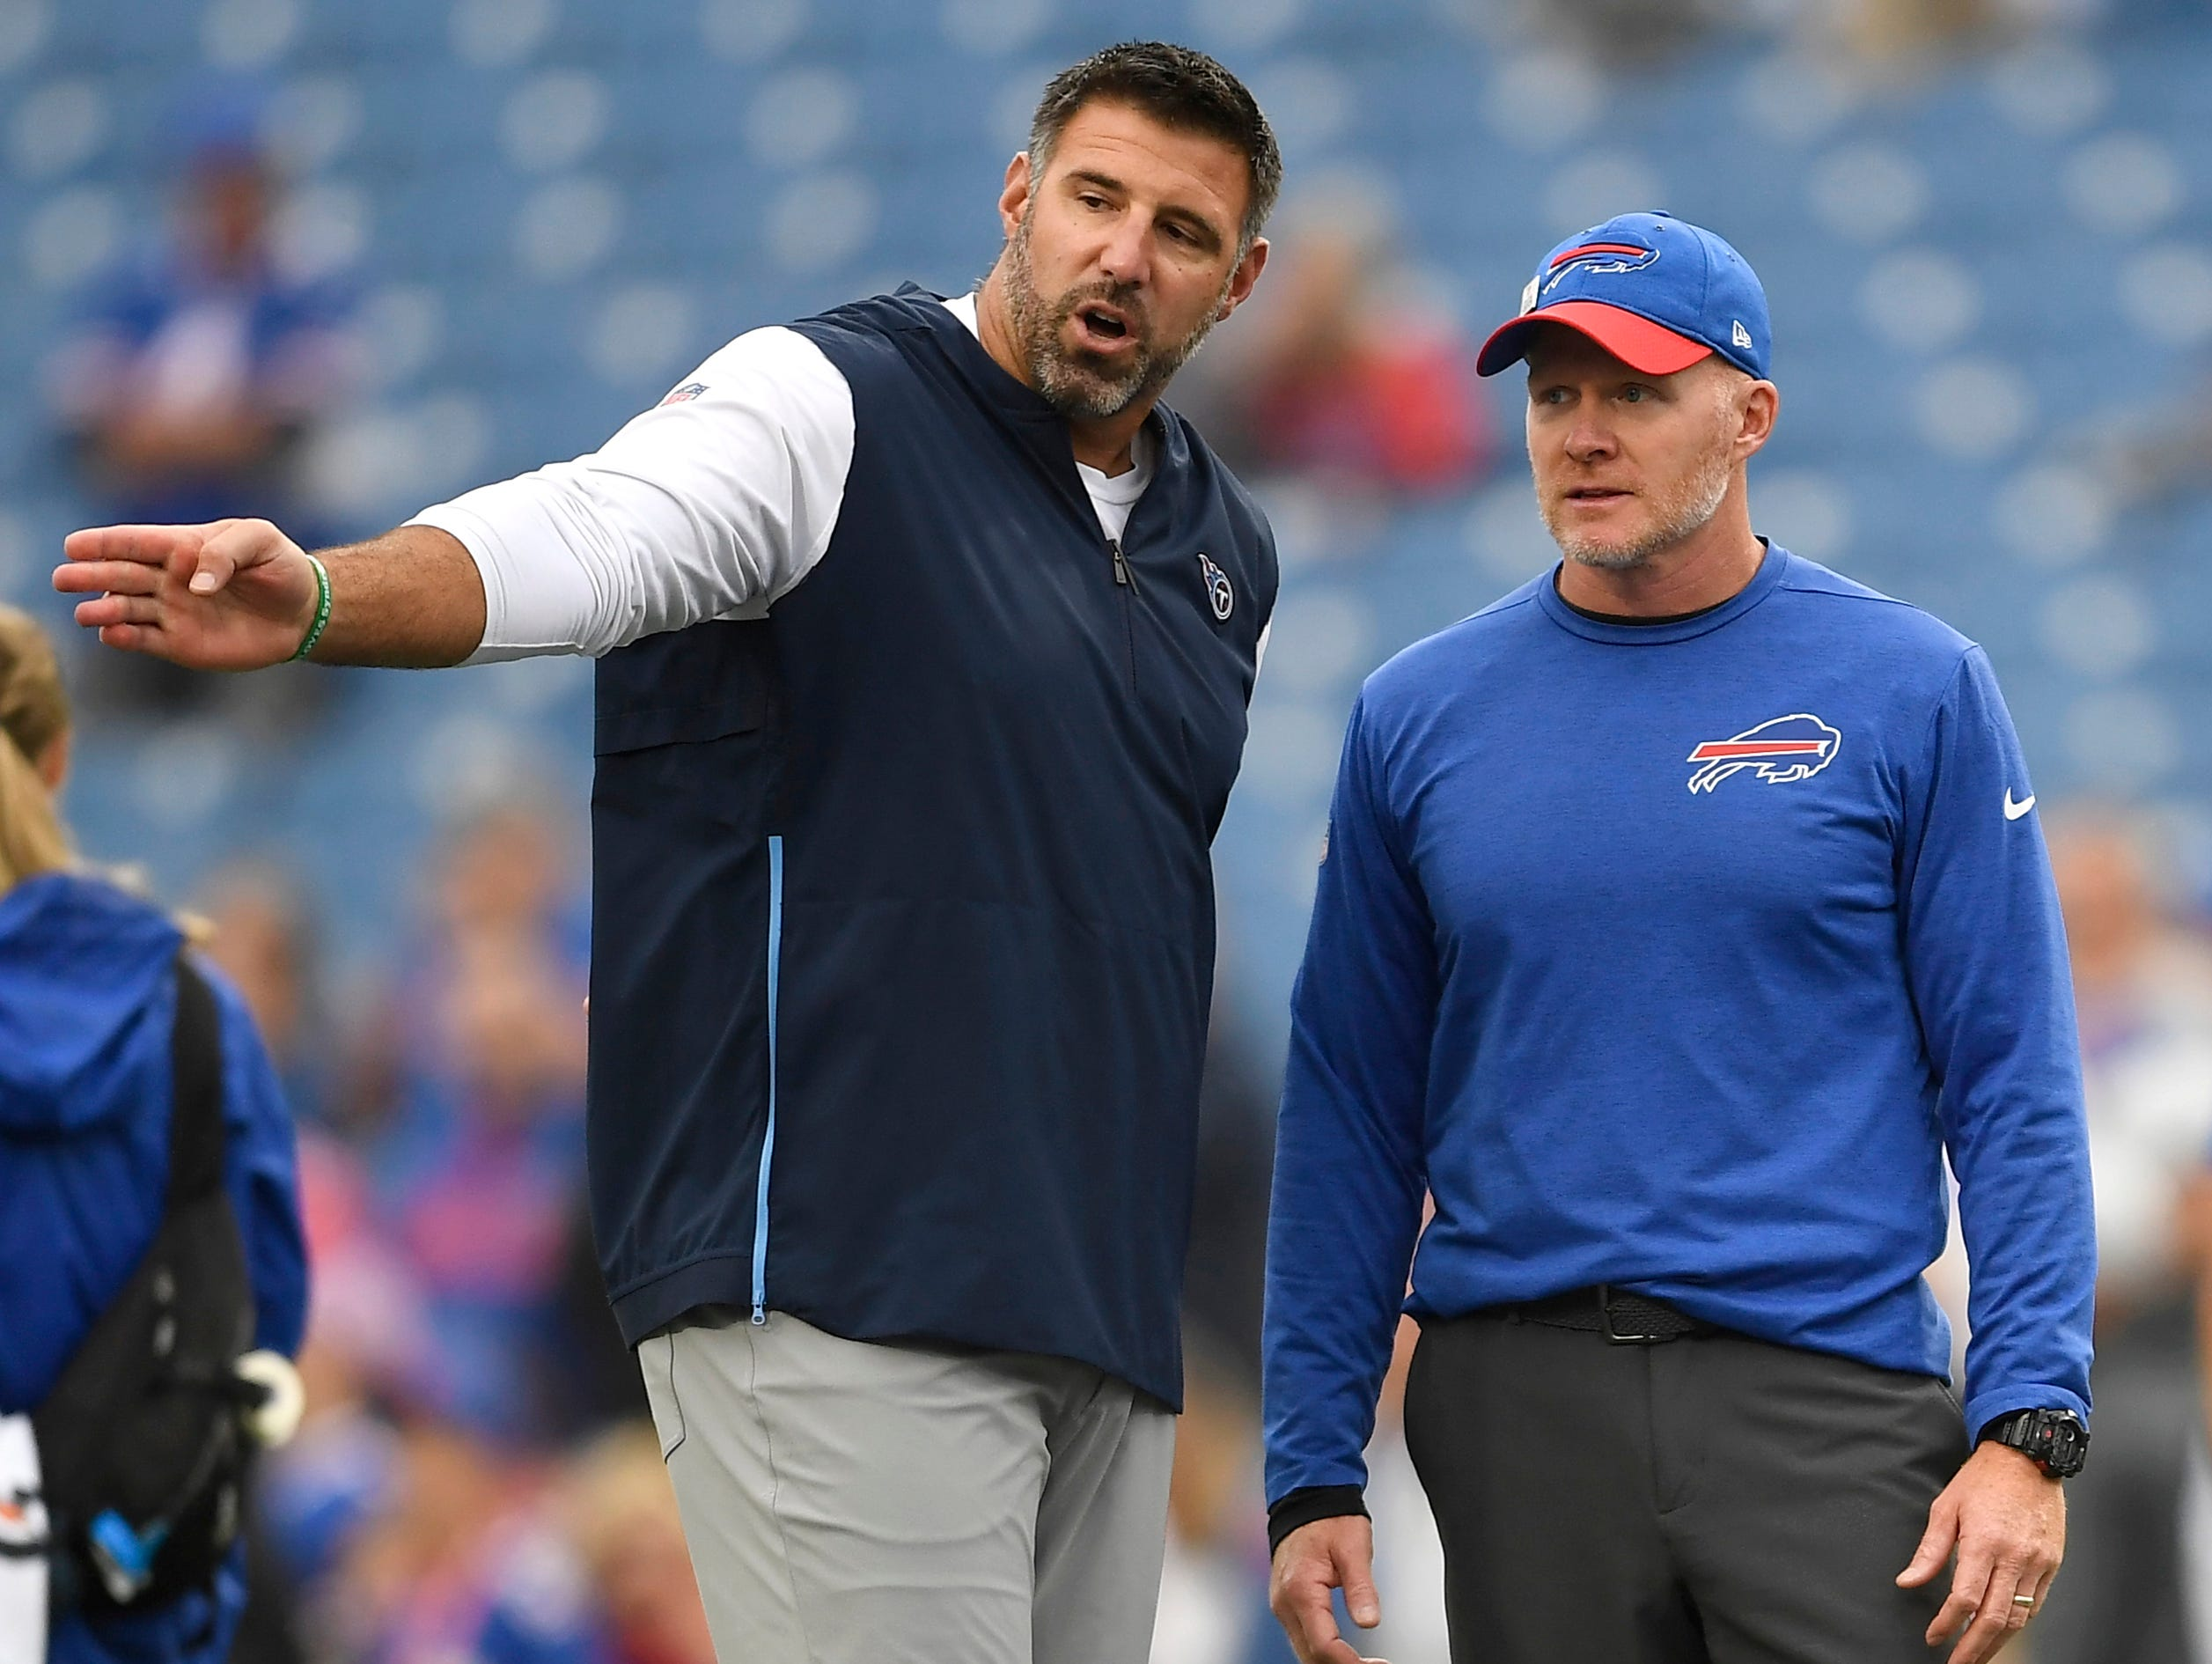 Tennessee Titans head coach Mike Vrabel, left, talks to Buffalo Bills head coach Sean McDermott prior to an NFL football game, Sunday, Oct. 7, 2018, in Orchard Park, N.Y. (AP Photo/Adrian Kraus)